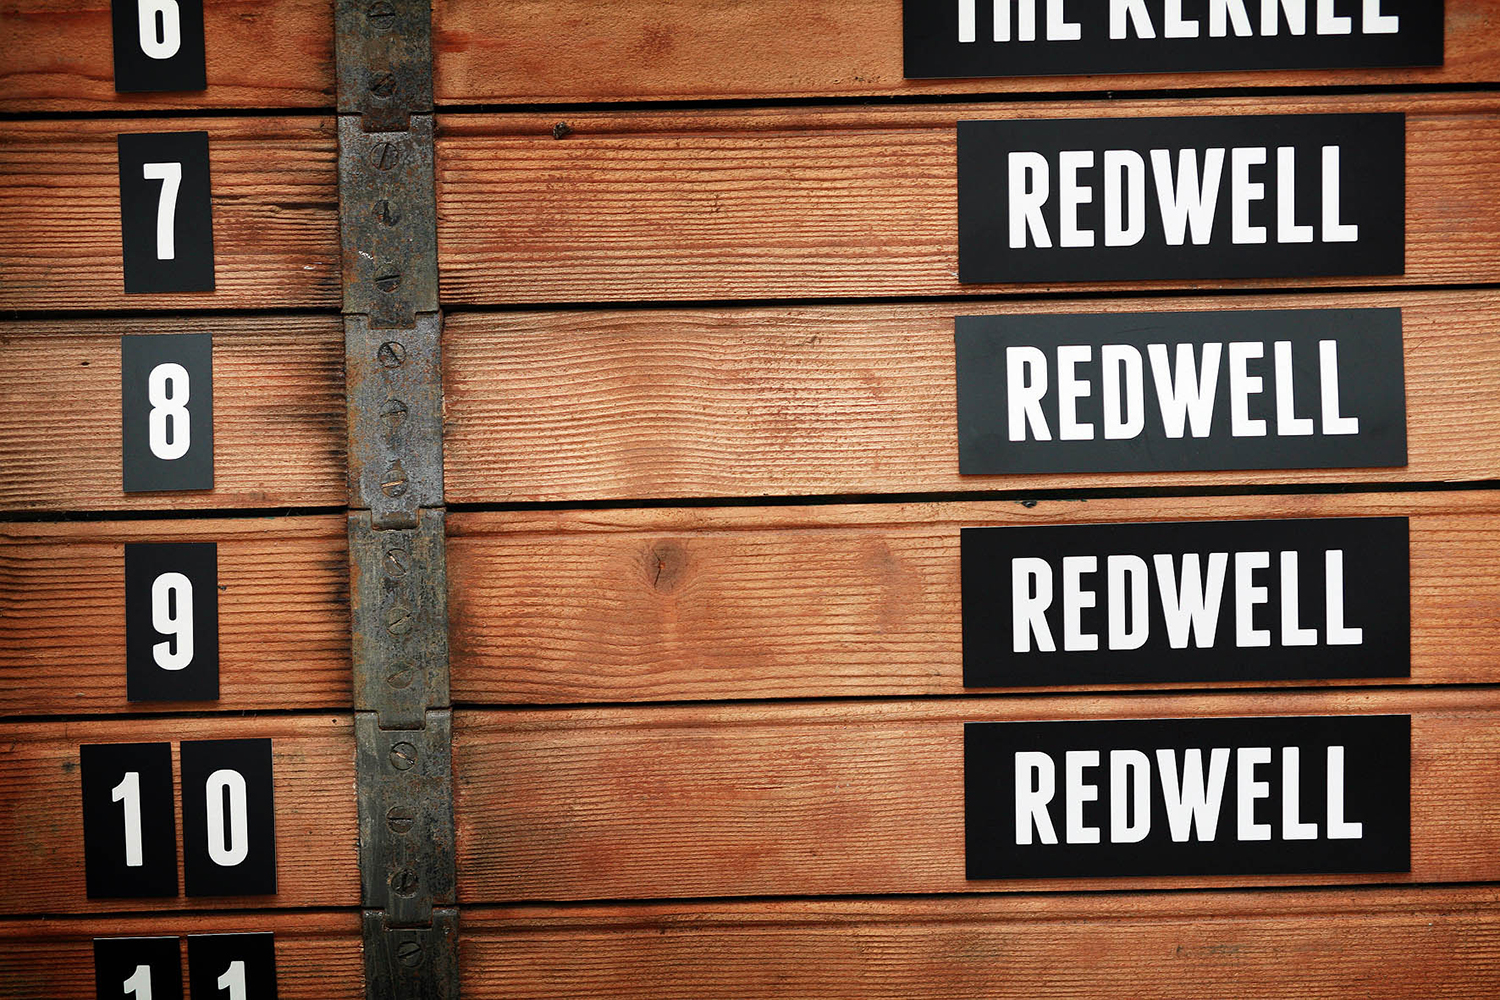 mash-tun-beer-board-graphics-typography-sign-redwell-beer-brewery-craft-beer-norwich-pub.jpg